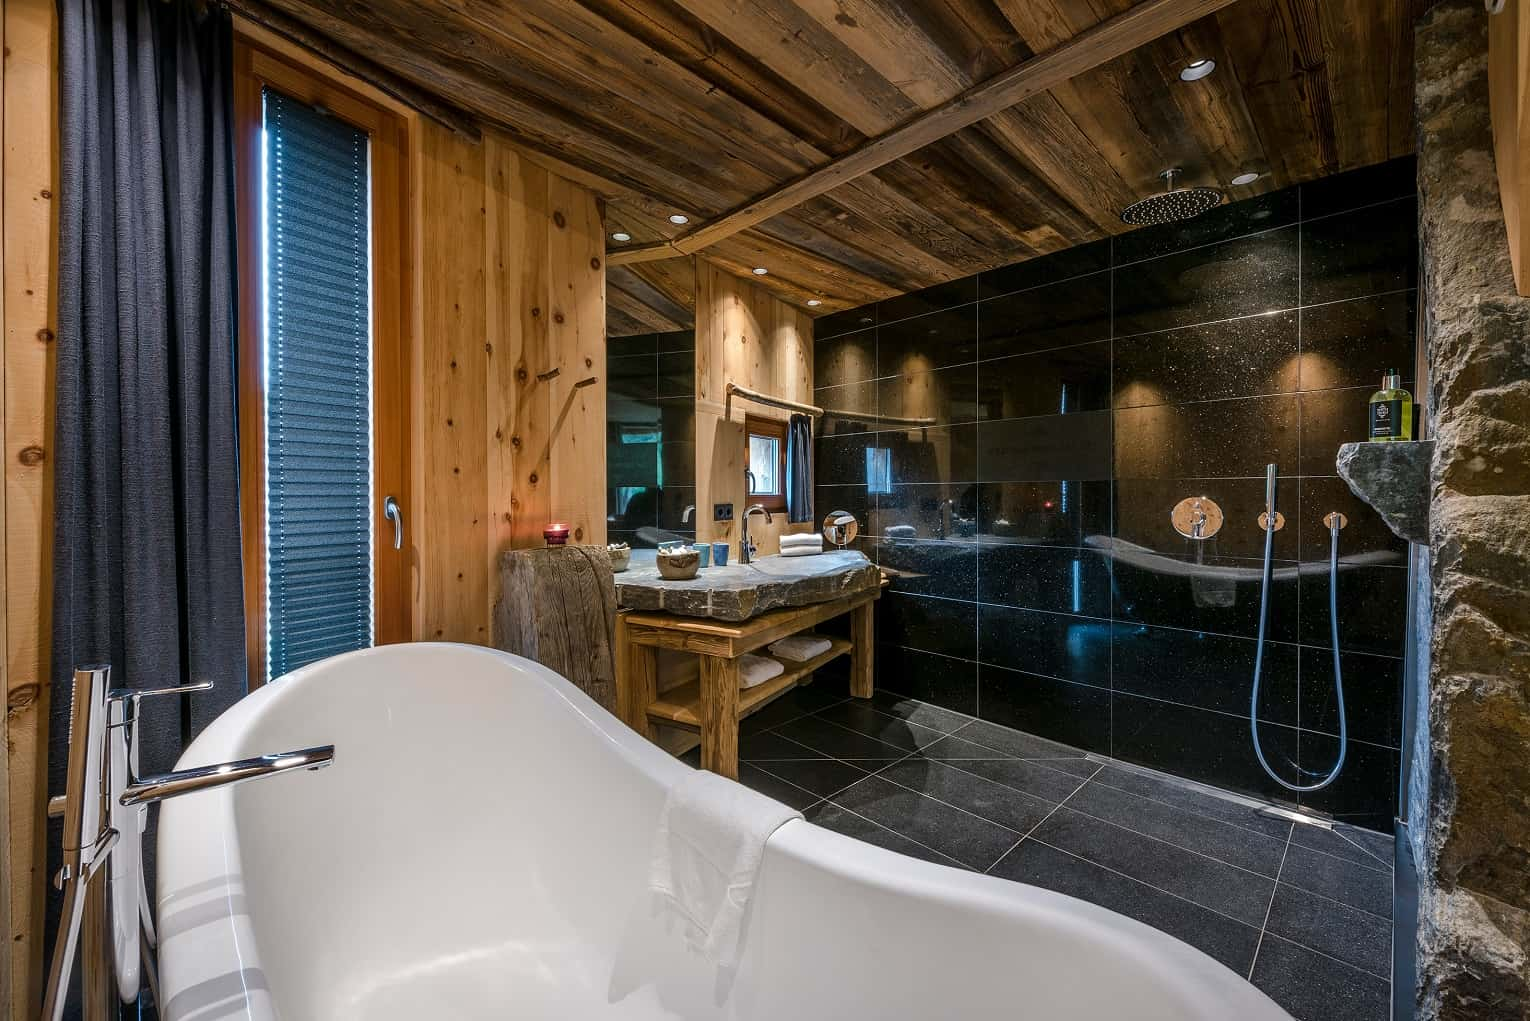 woodenstyle & spa